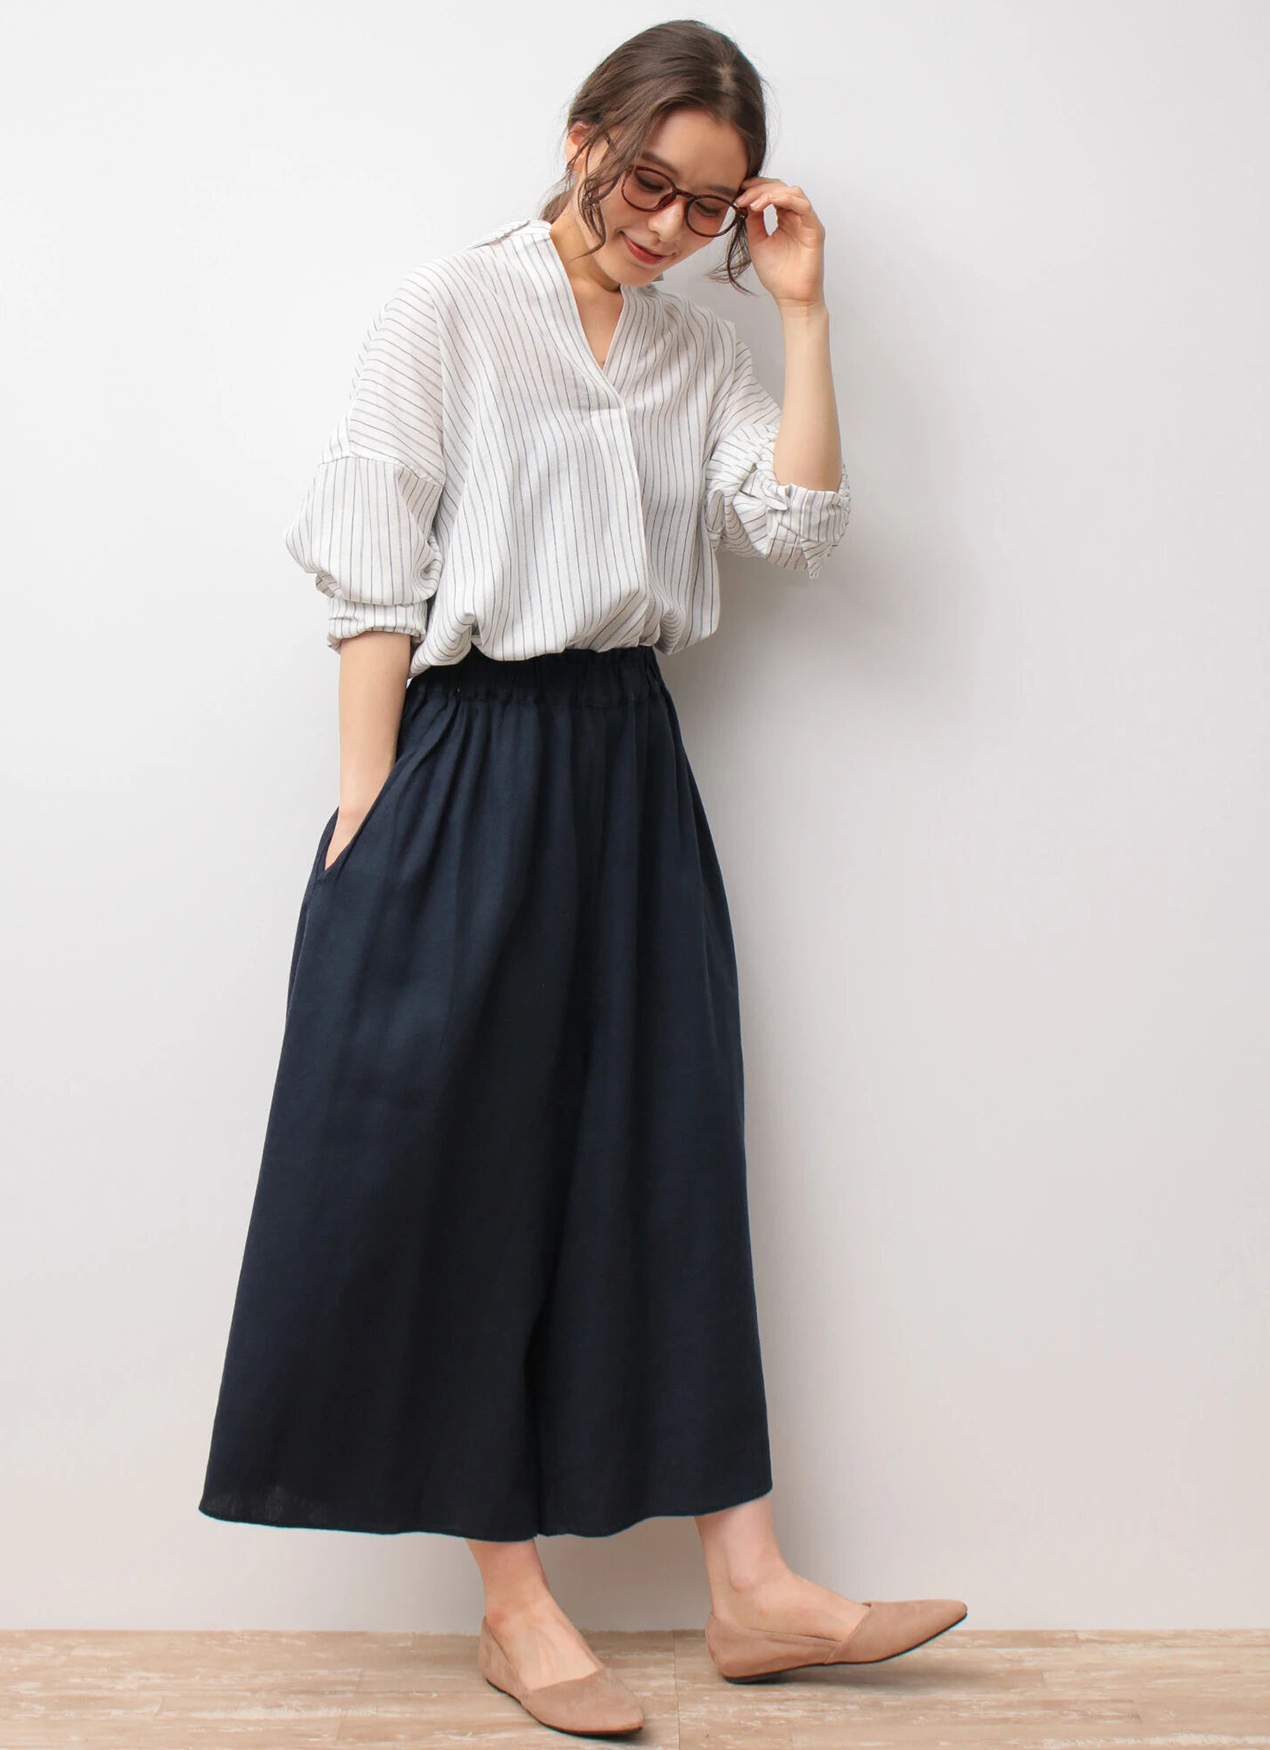 Earth, Music & Ecology Tomiko Pants - Navy